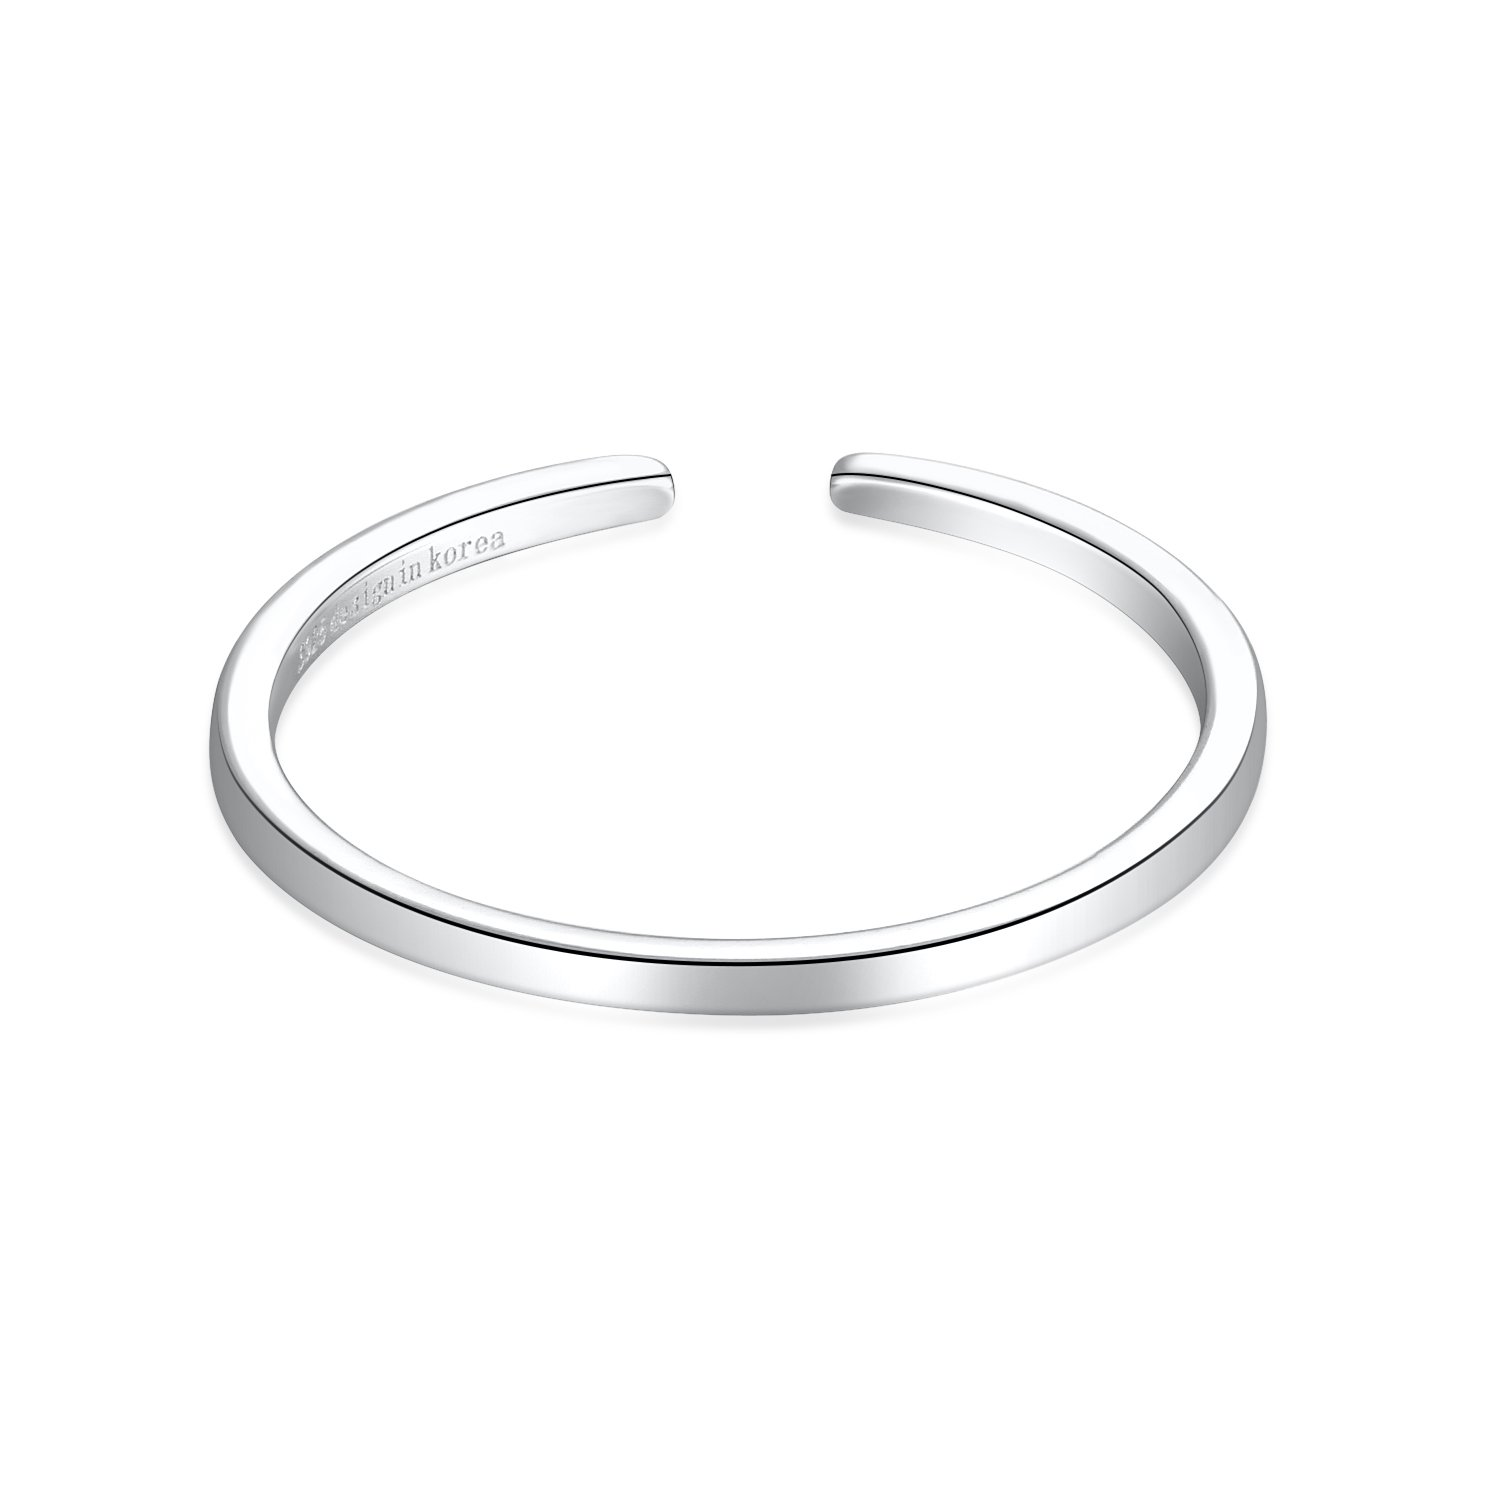 1.2mm Minimalist Plain Sterling Silver Stackable Open Finger Ring Bands Adjustable For Women Men Size 5.5-7.5